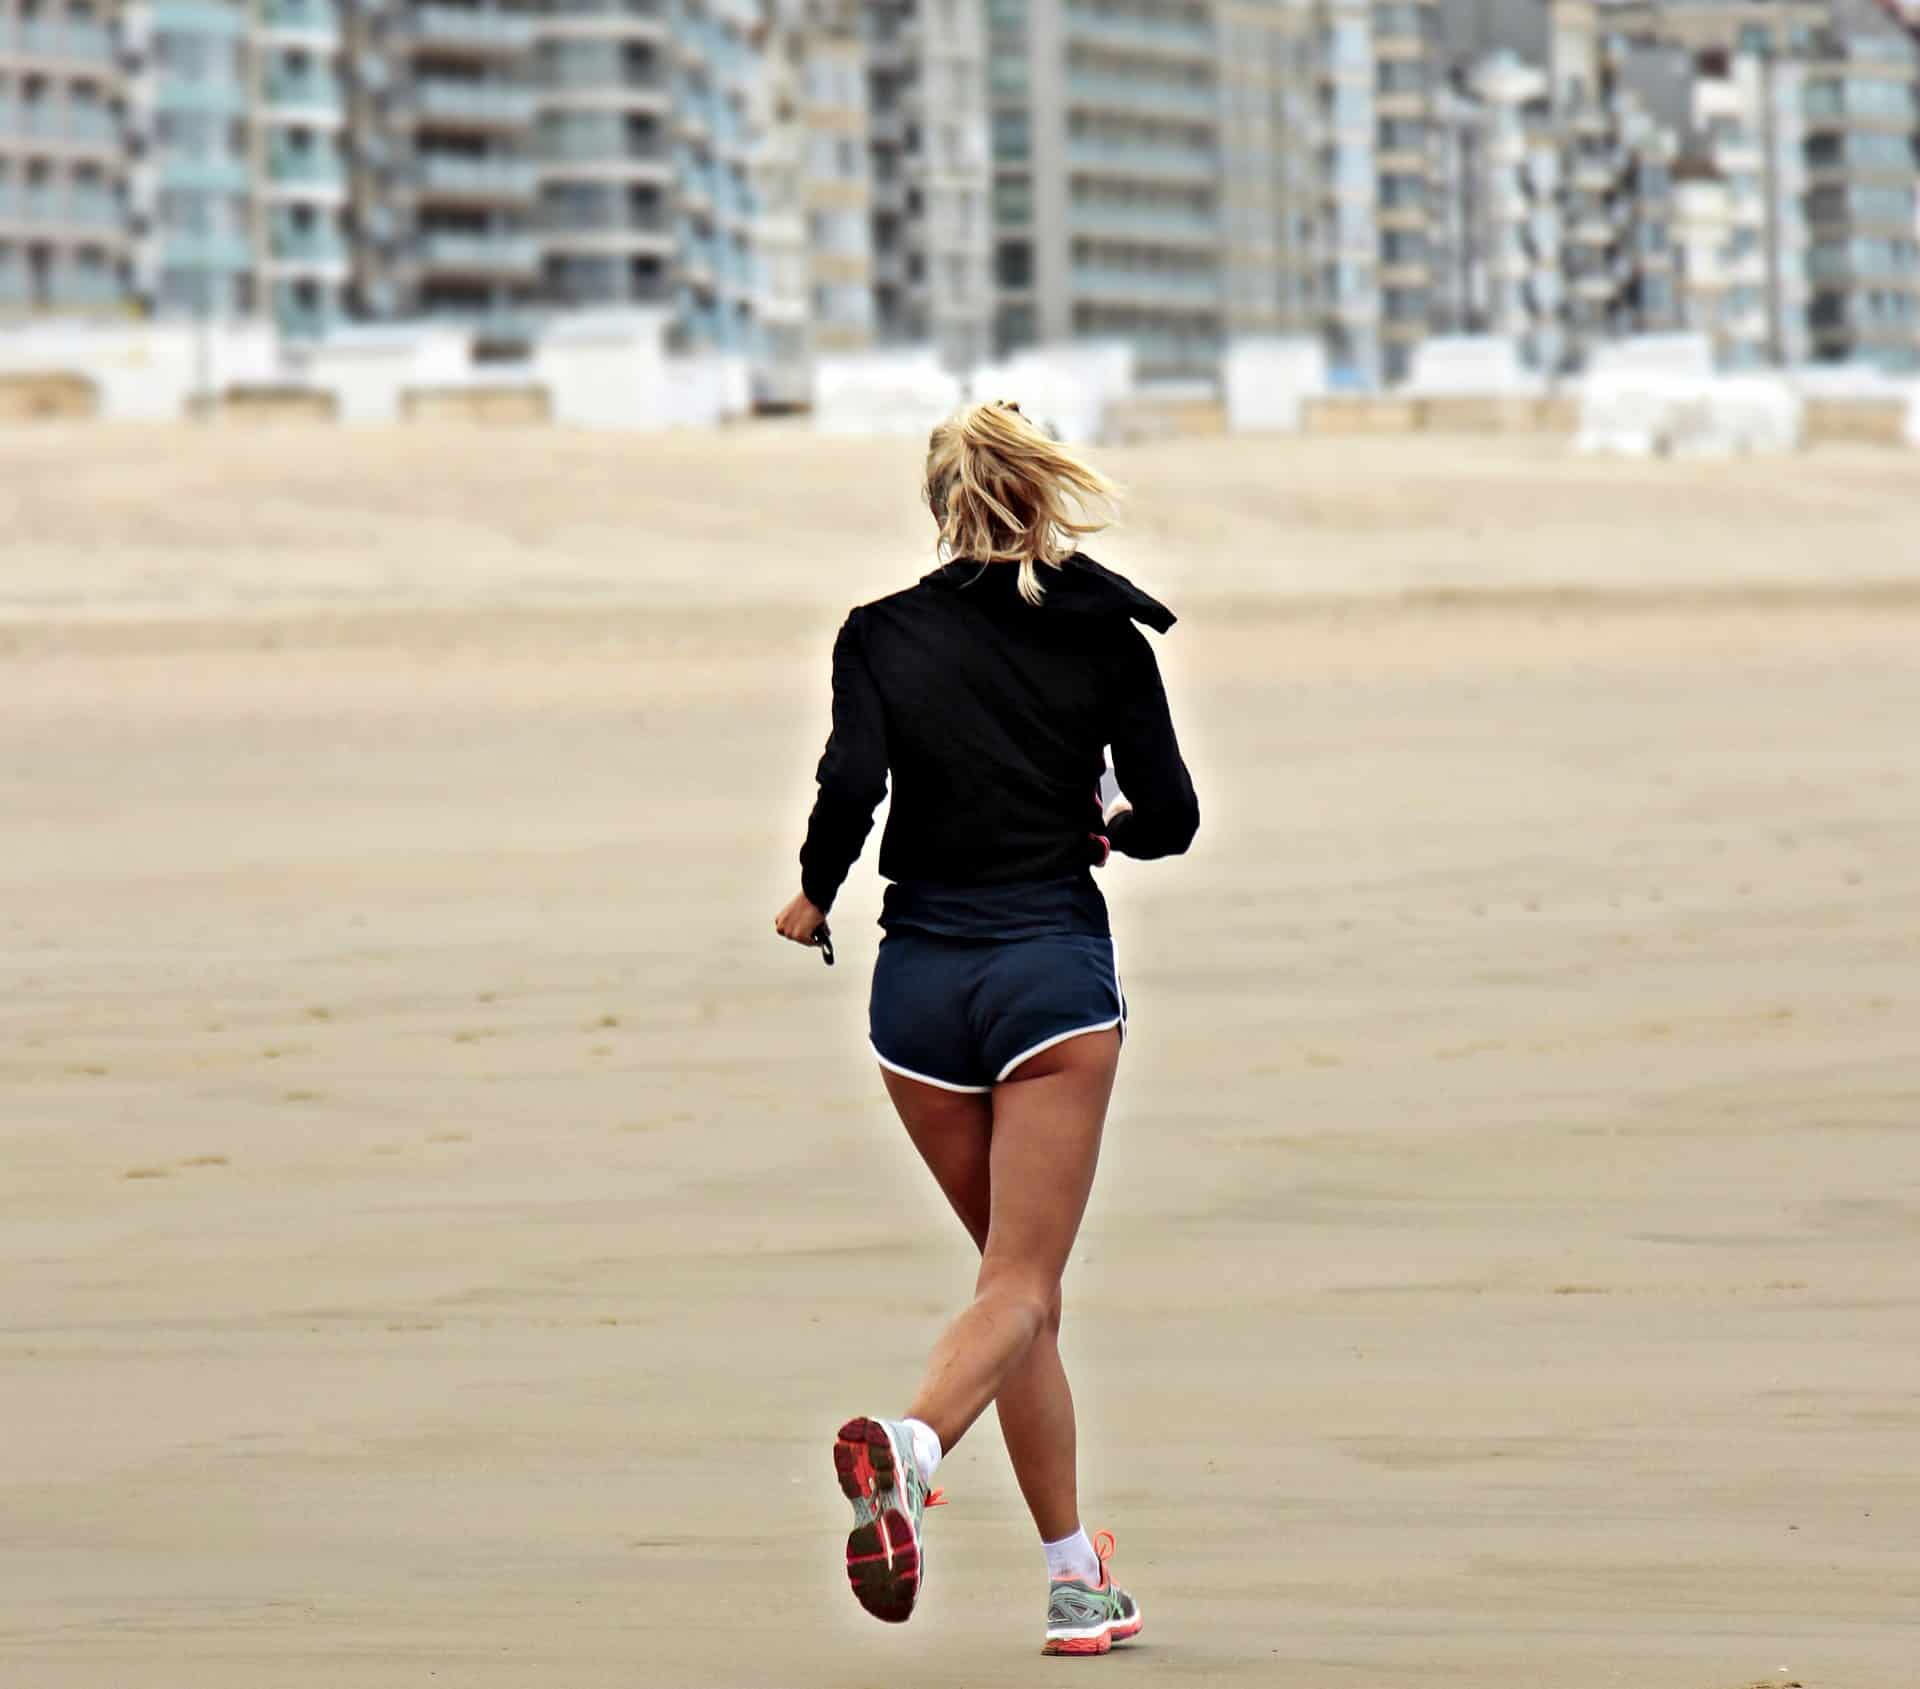 The Significance Of Easy Run Days